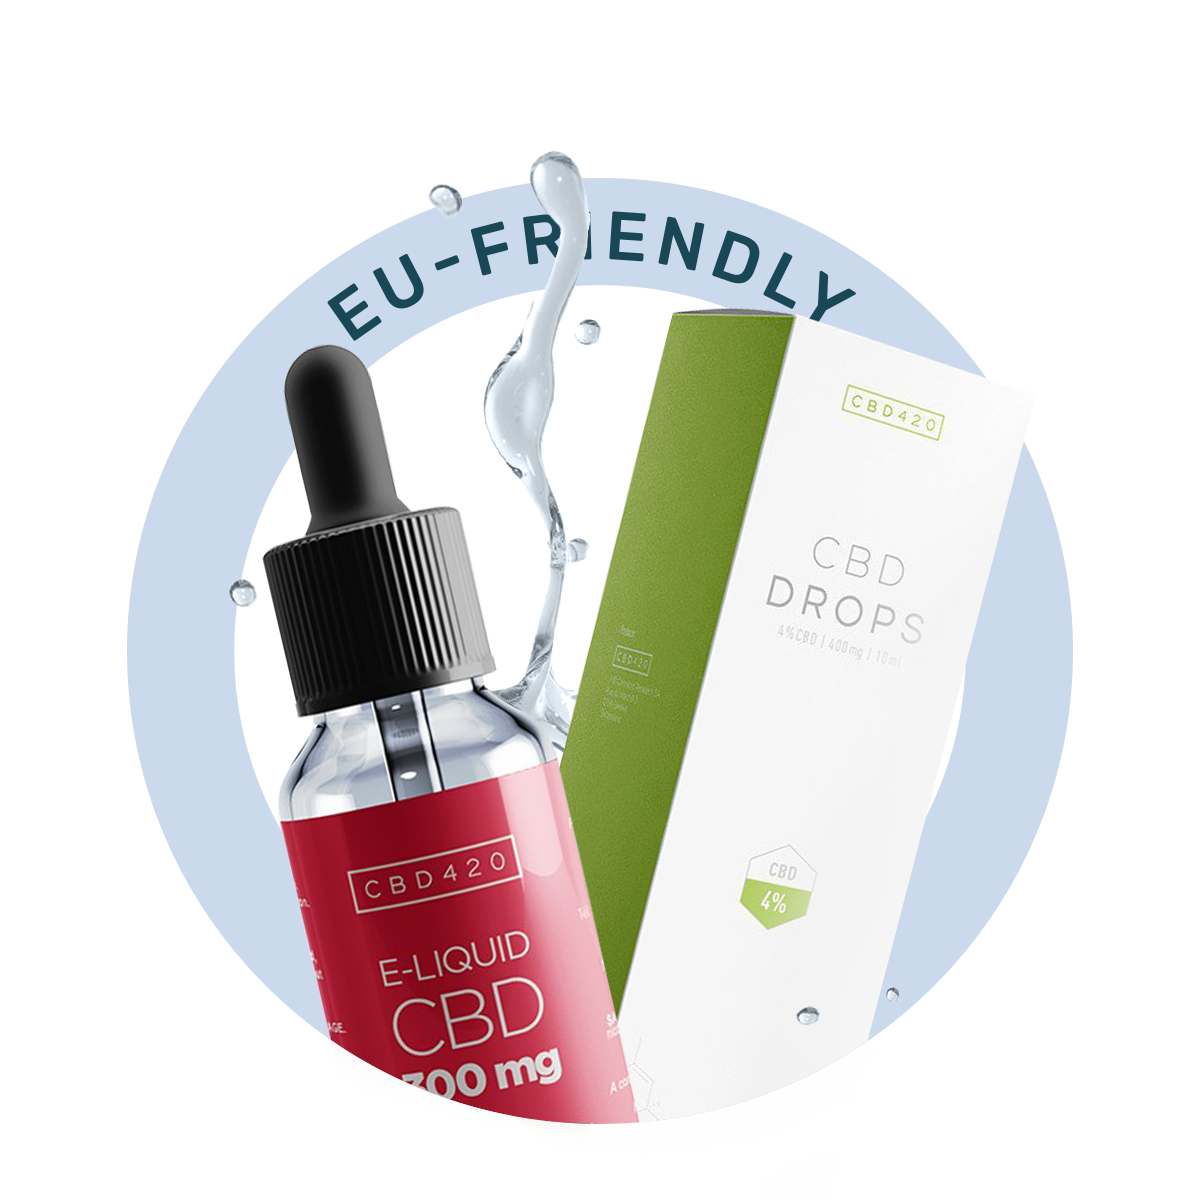 E-Liquids_eu-friendly.png